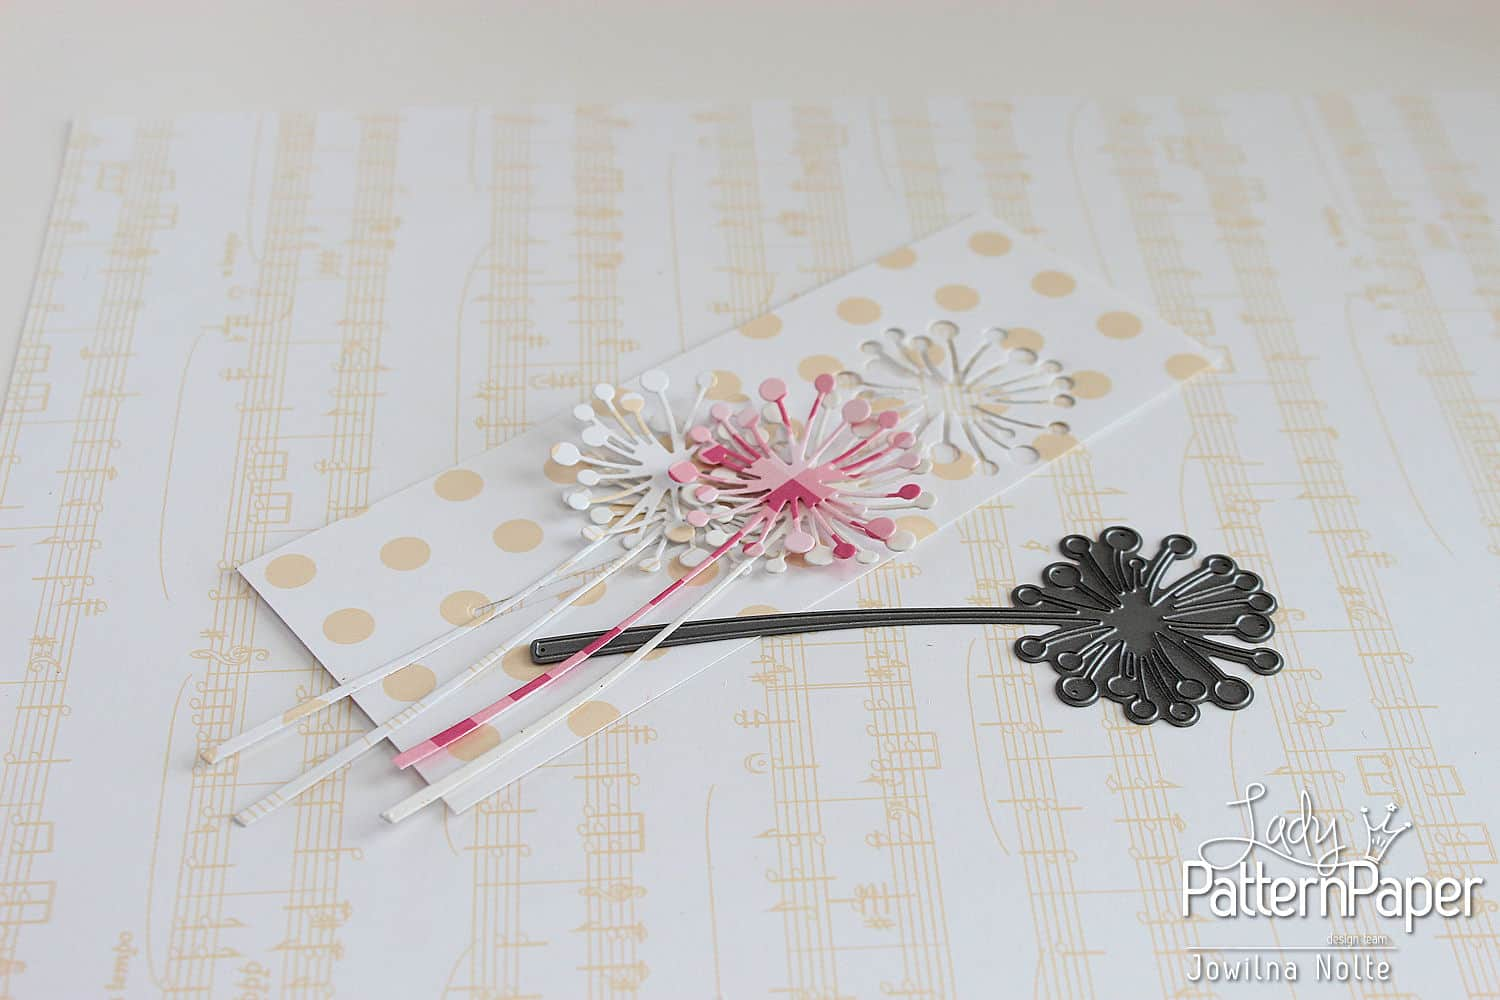 Paper Craft Fun Handmade Card - Step 1